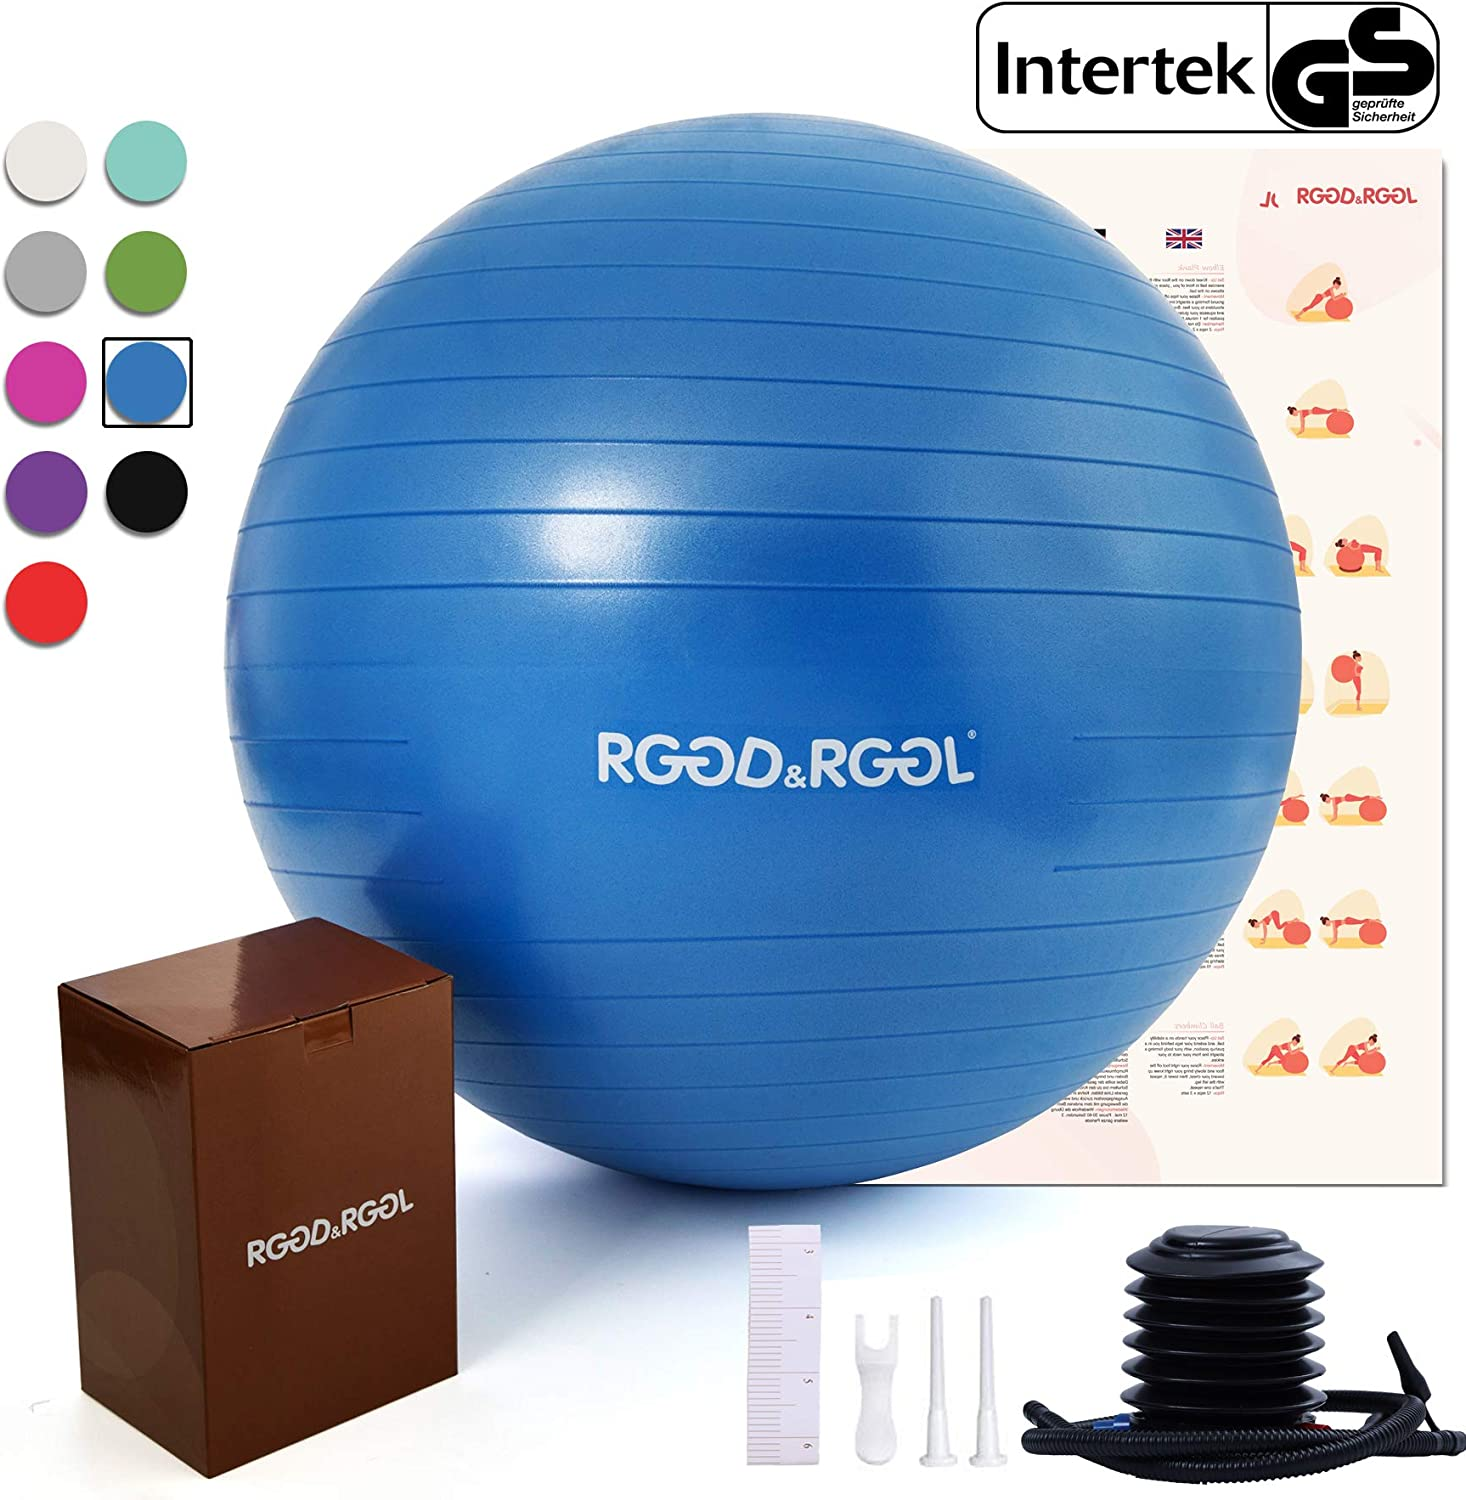 RGGD RGGL Exercise Ball 18-34in ,Professional Yoga Stability Ball Chair Extra Thick Anti-Burst Support 2200 lbs,with Quick Pump Workout Guide for Home Gym Office